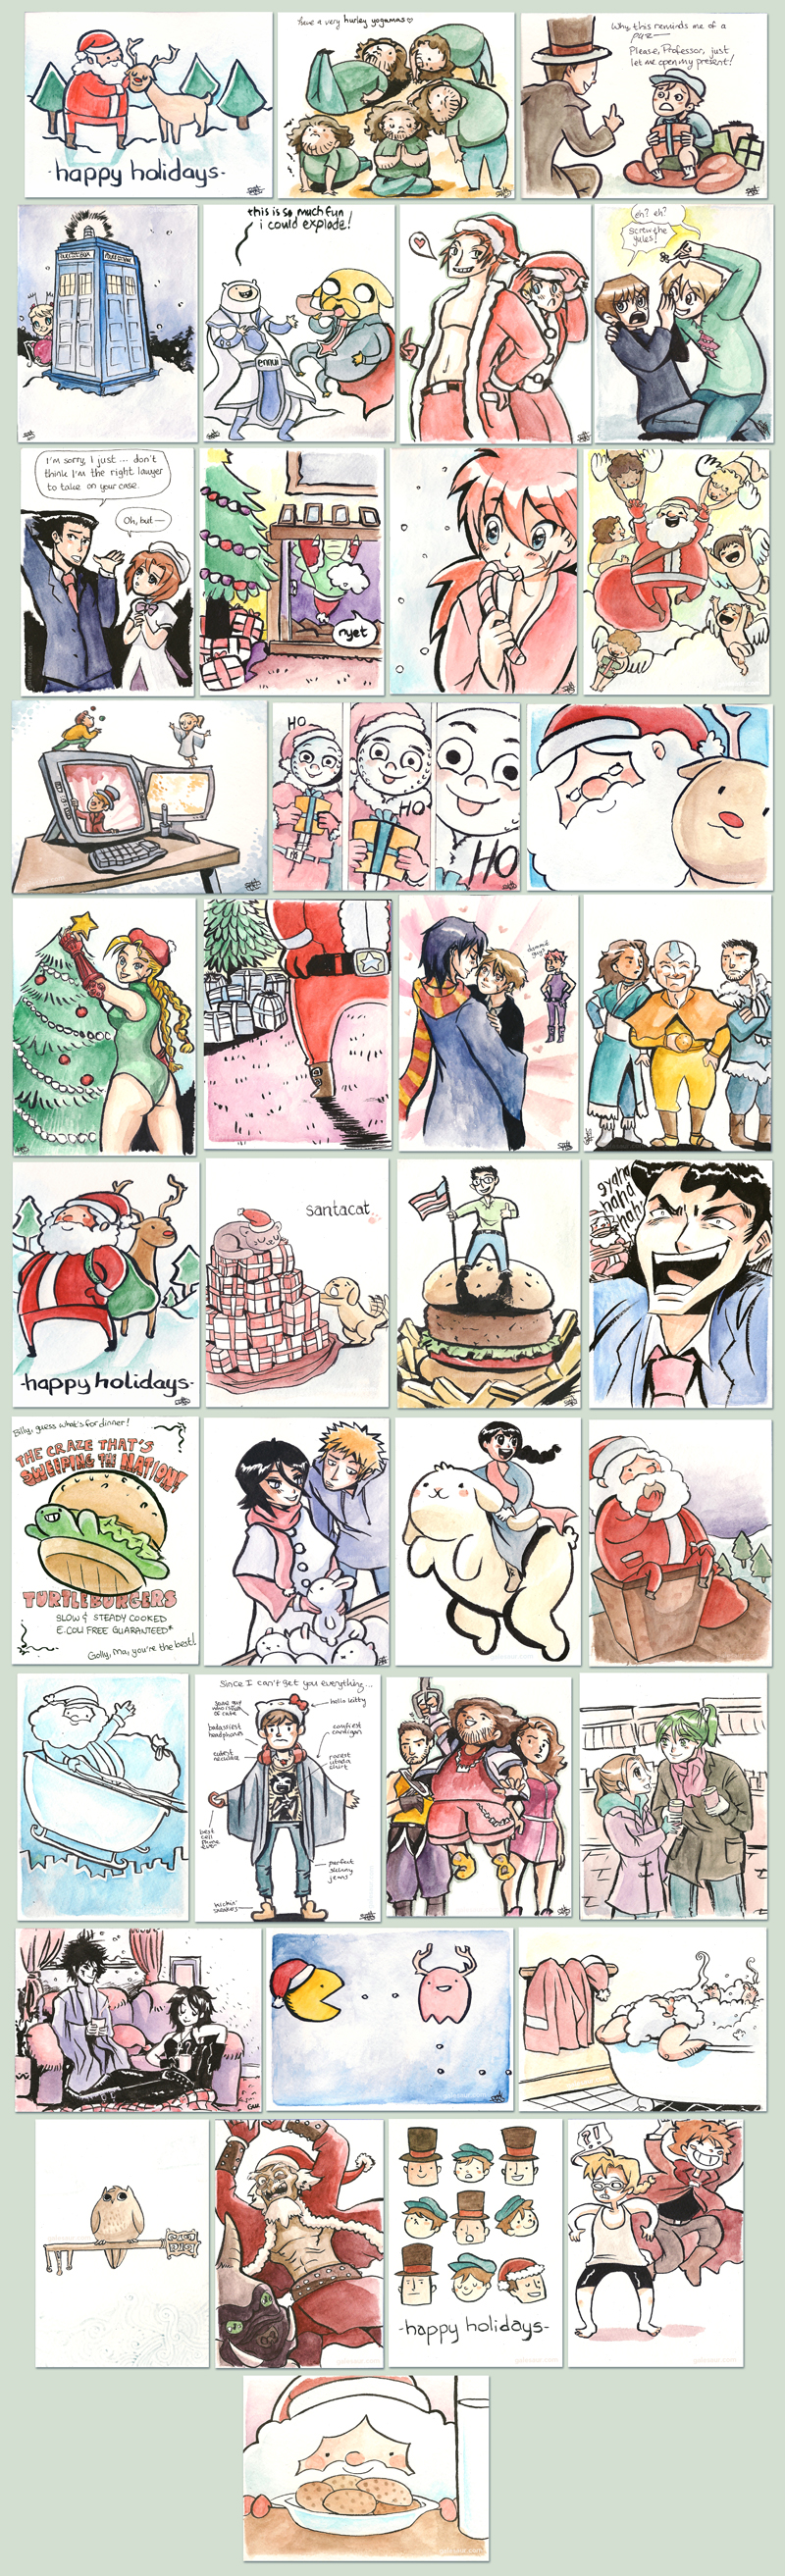 holiday cards 2010 by kelvarin